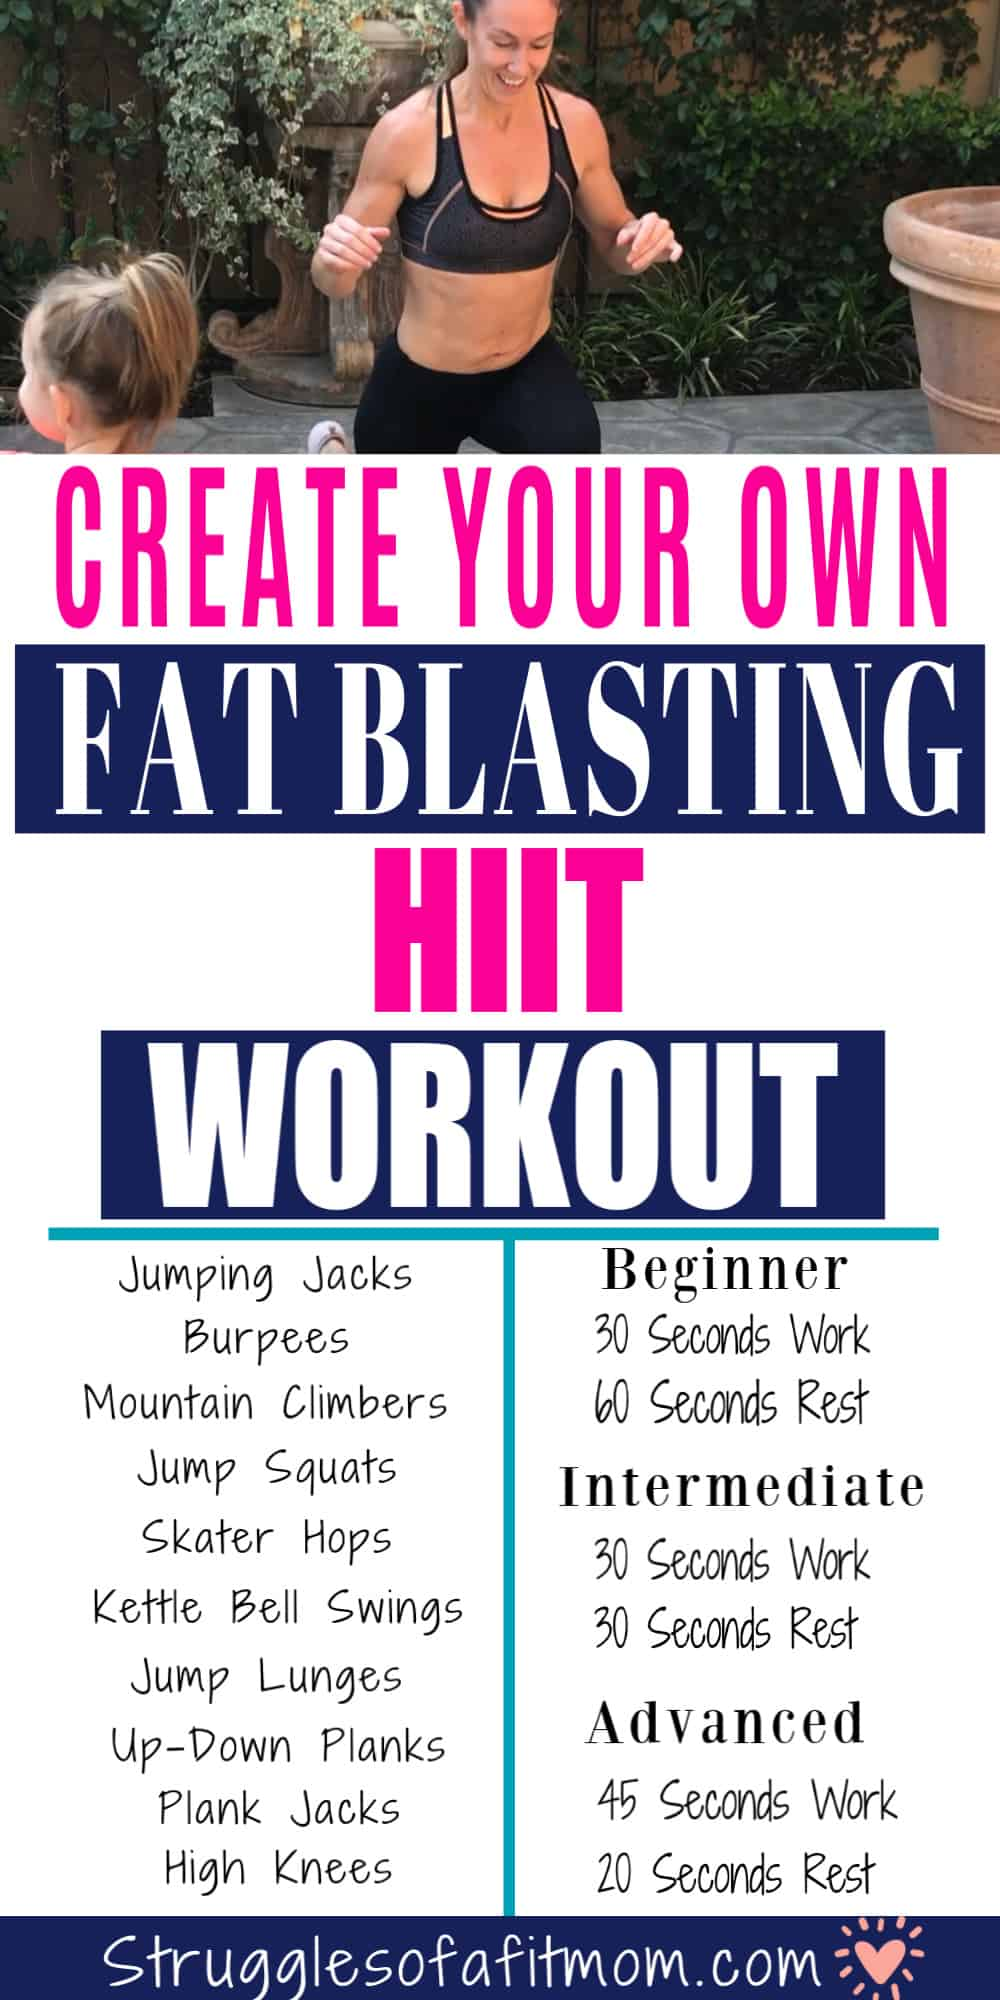 5 Beginner Hiit Workouts To Burn Belly Fat At Home